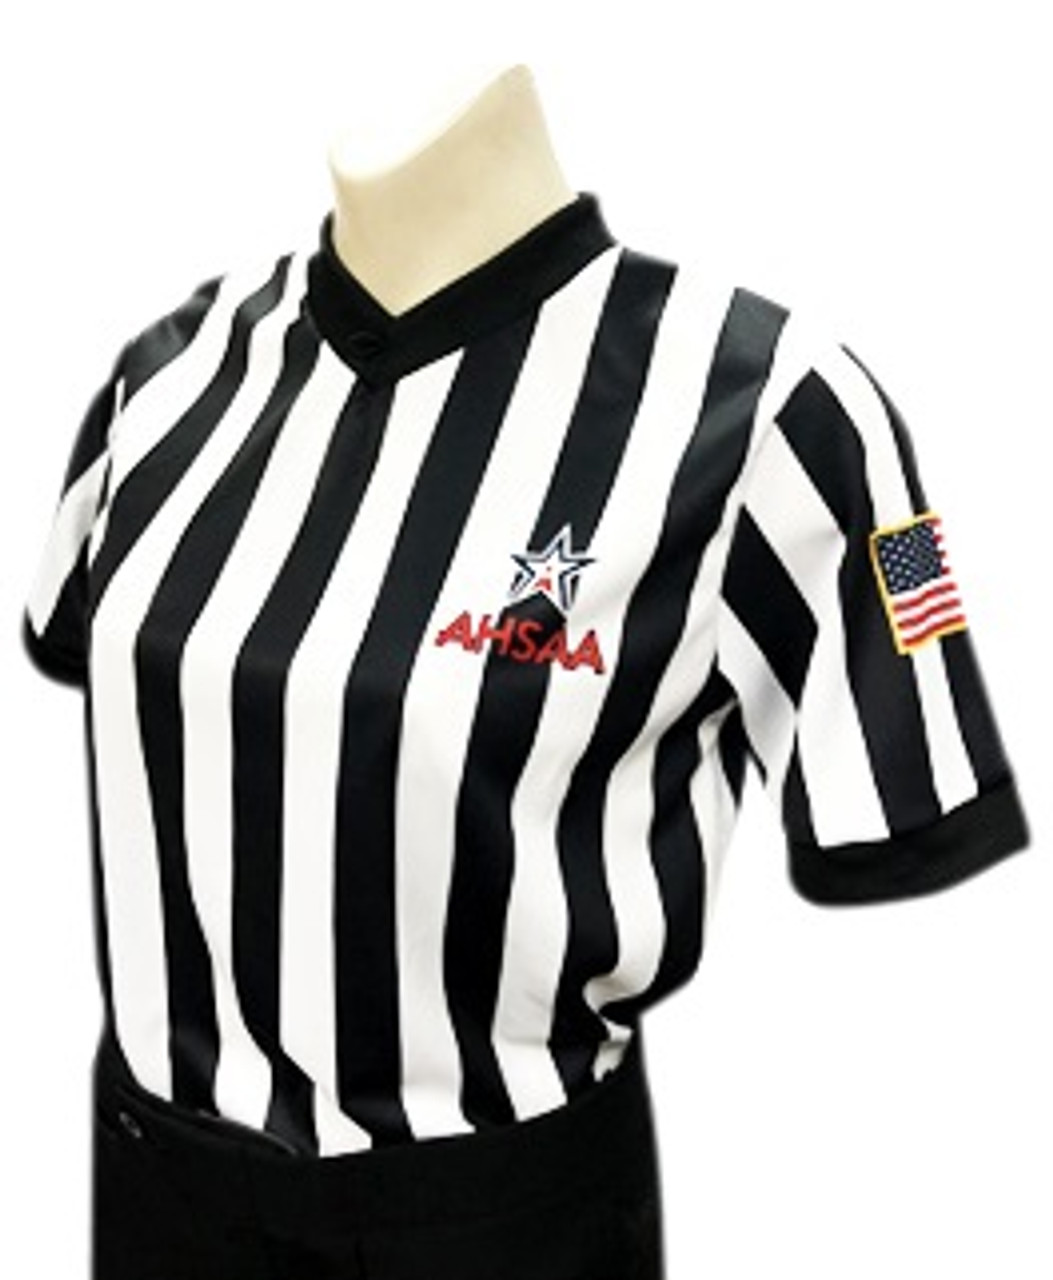 Alabama AHSAA Women's Basketball Referee Shirt